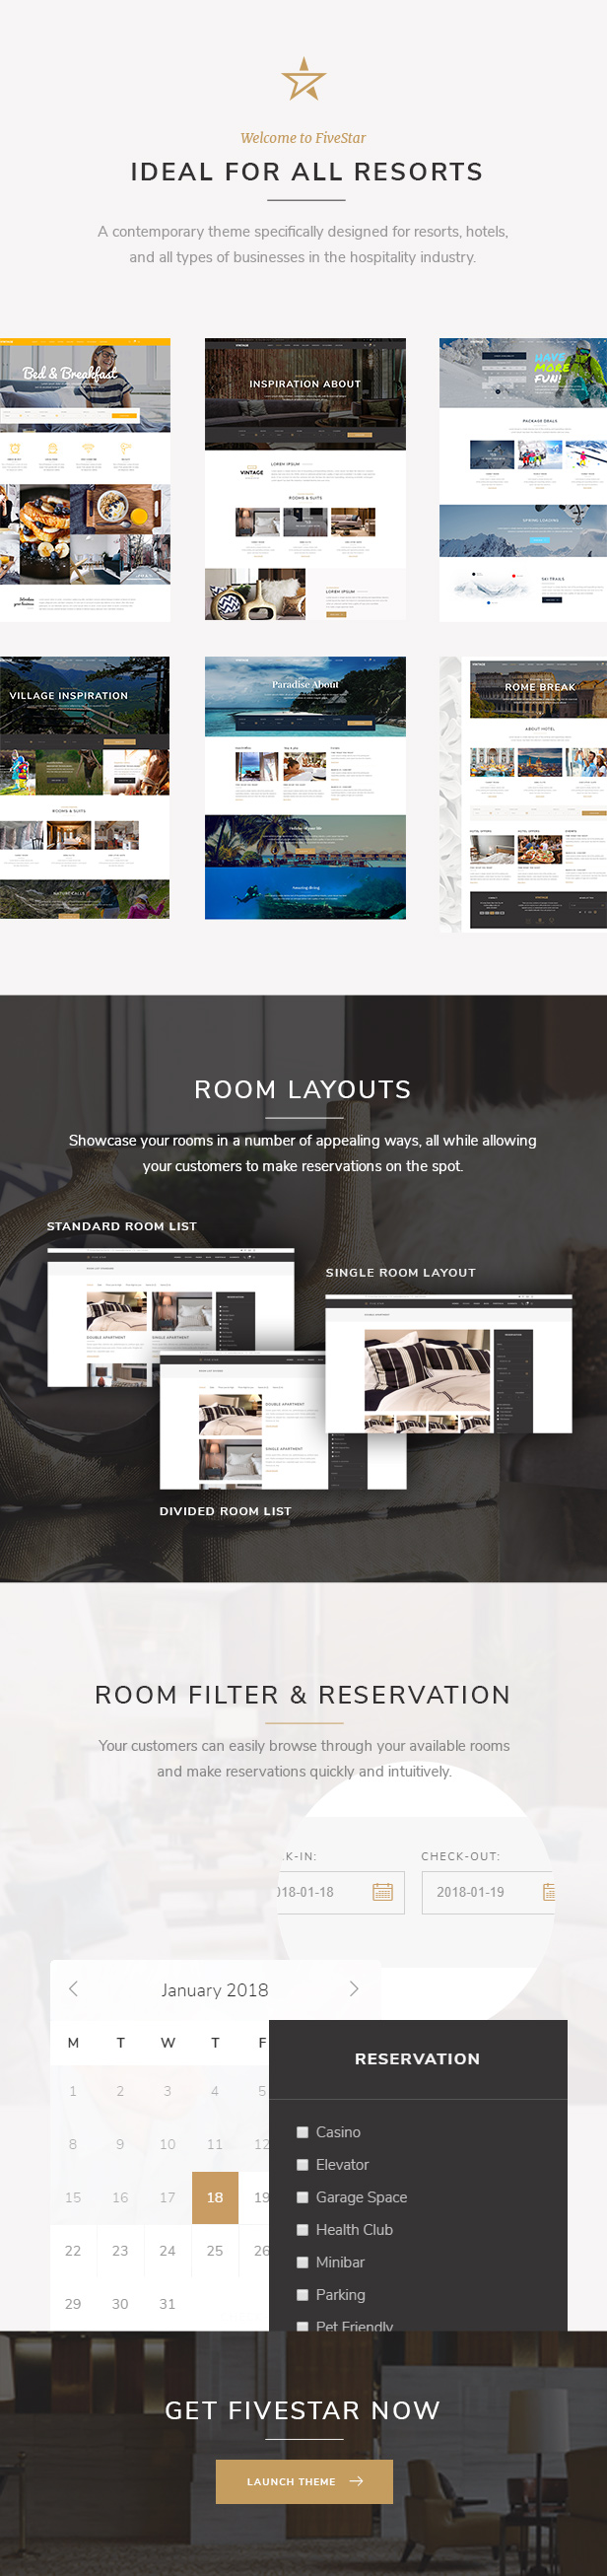 FiveStar - Theme for Hotels and Resort Booking - 1